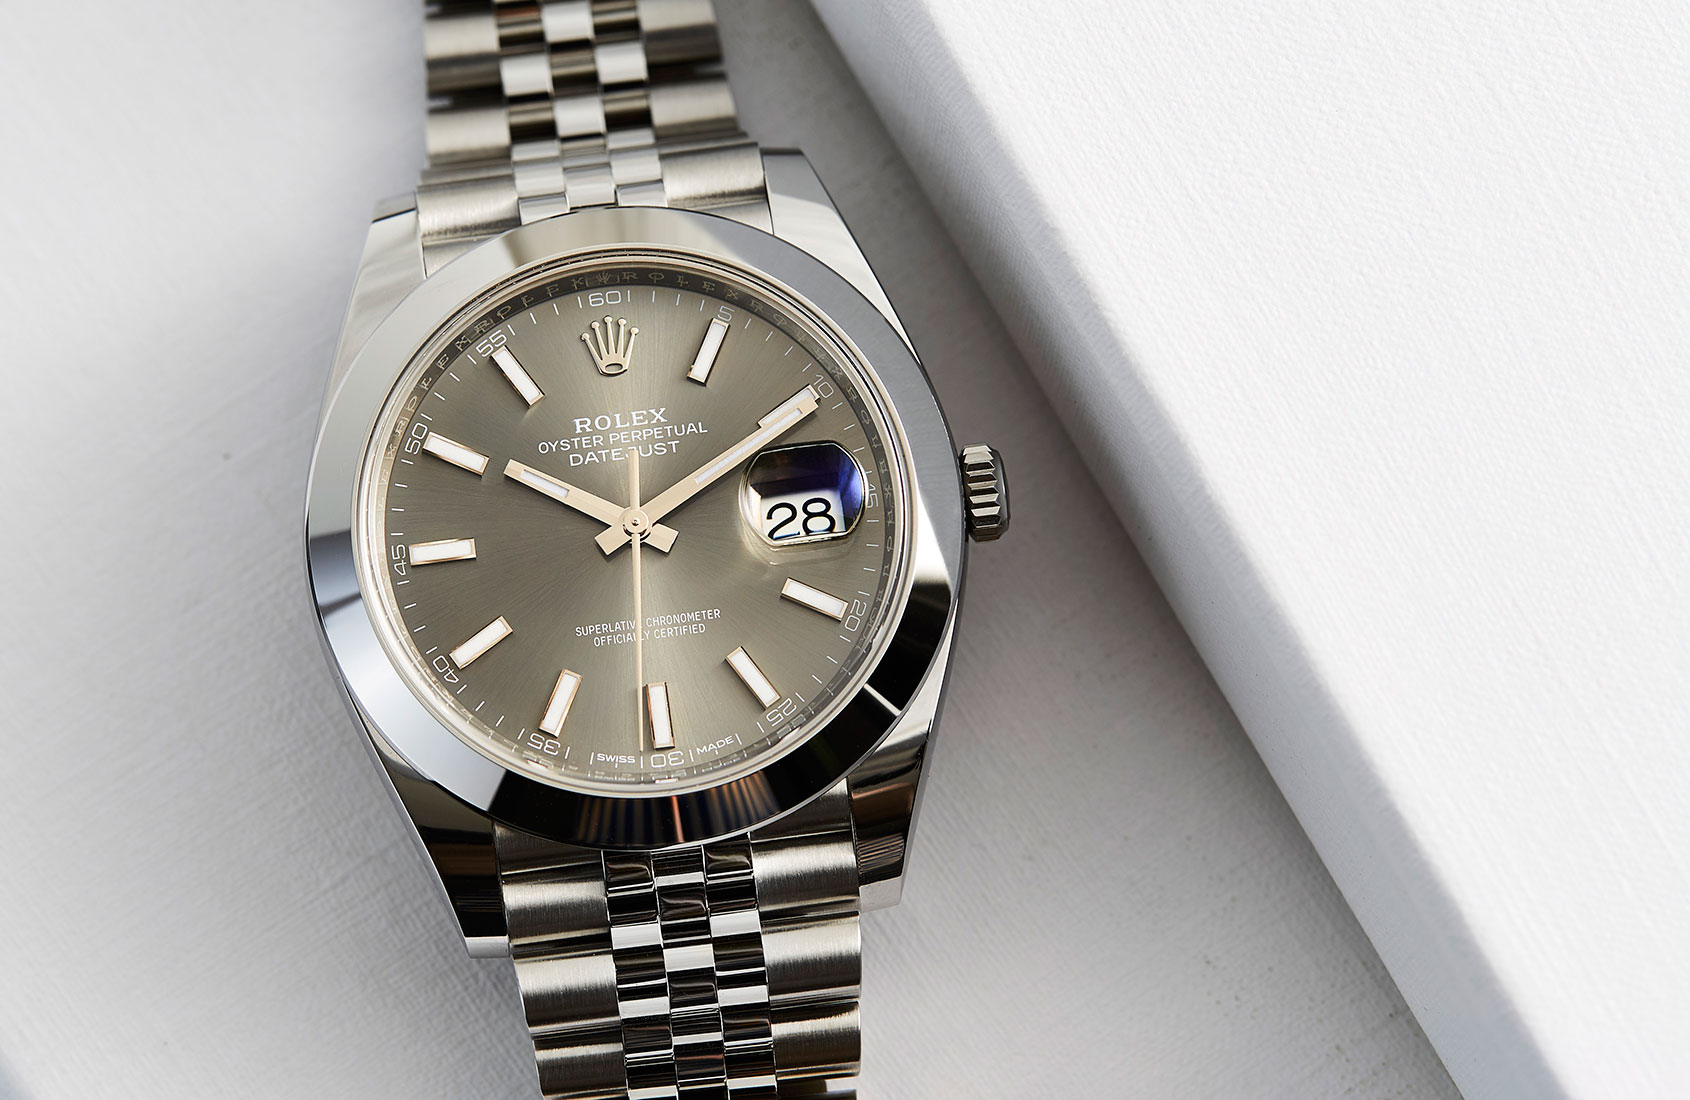 Steel Rolex Rolex Oyster Perpetual Datejust 41 In Steel Hands On Review